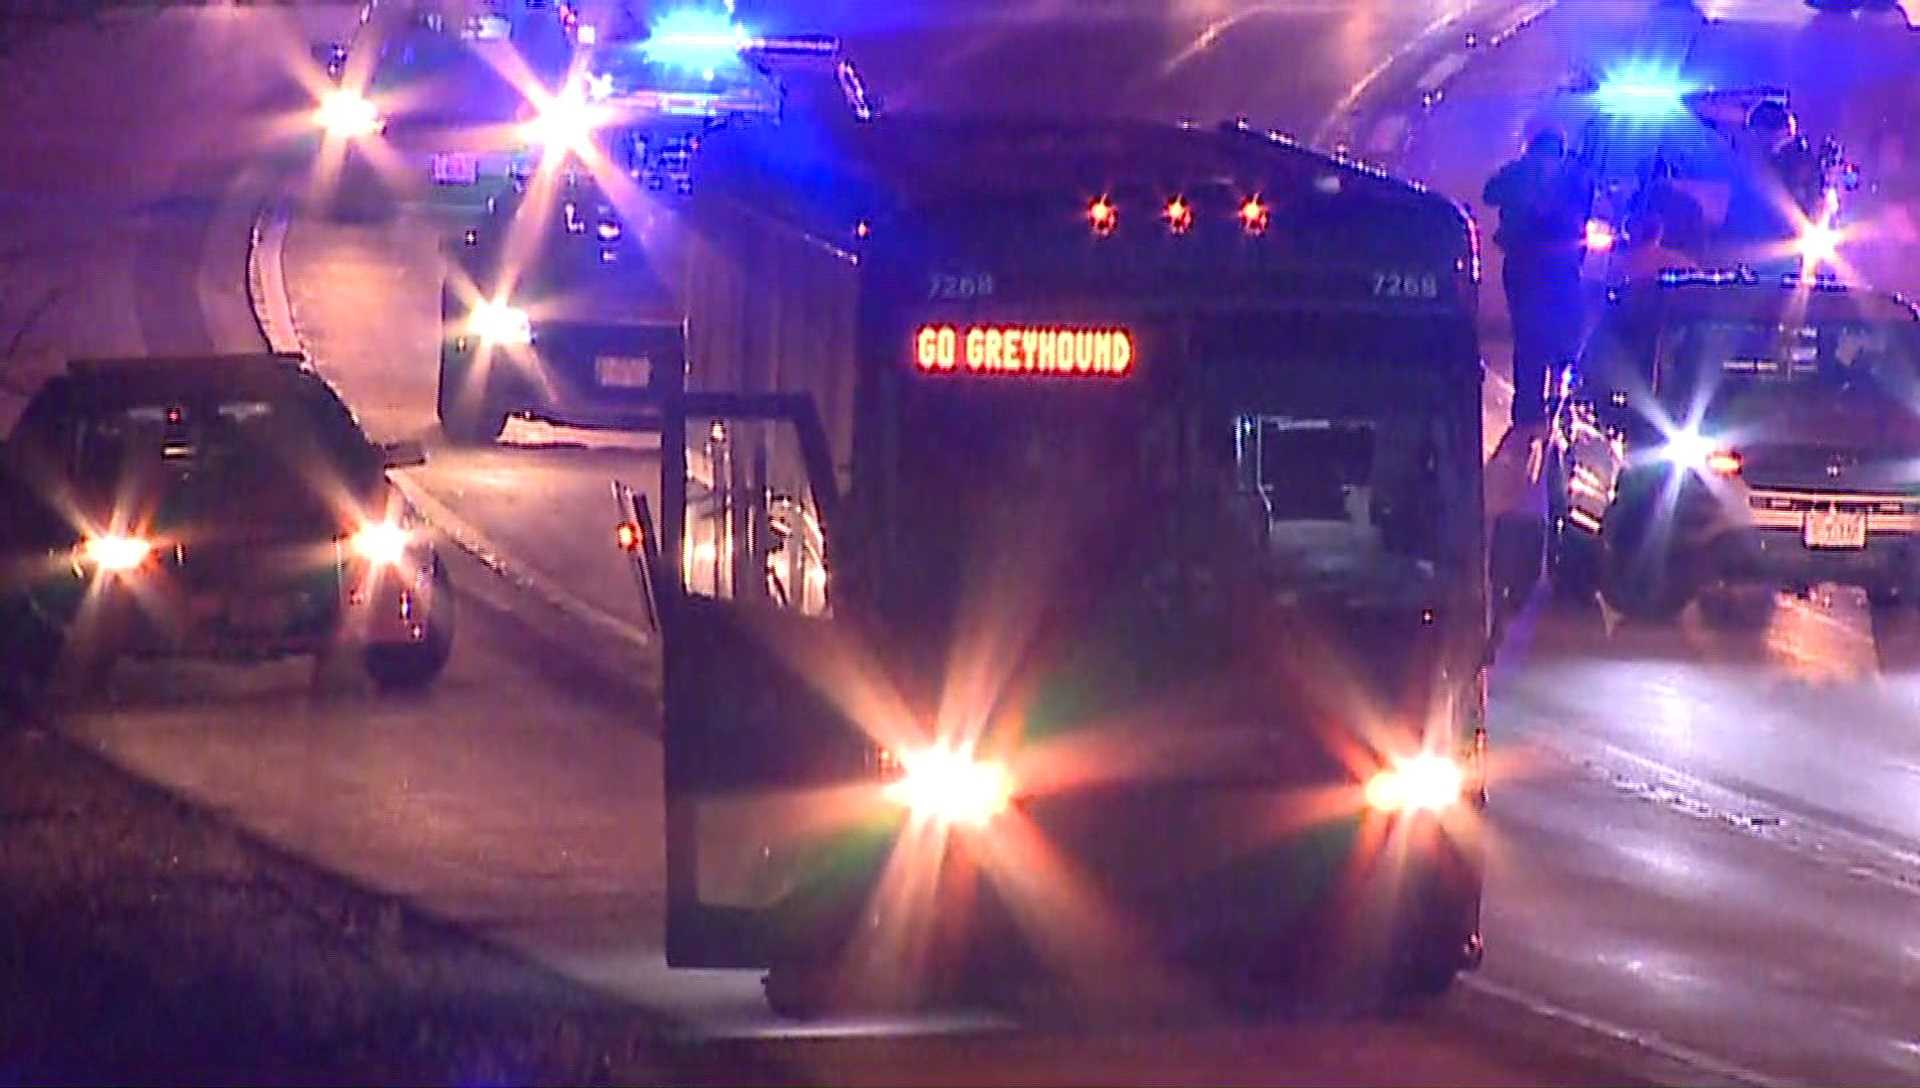 Suspect in custody after Greyhound bus pursuit across state lines, police say